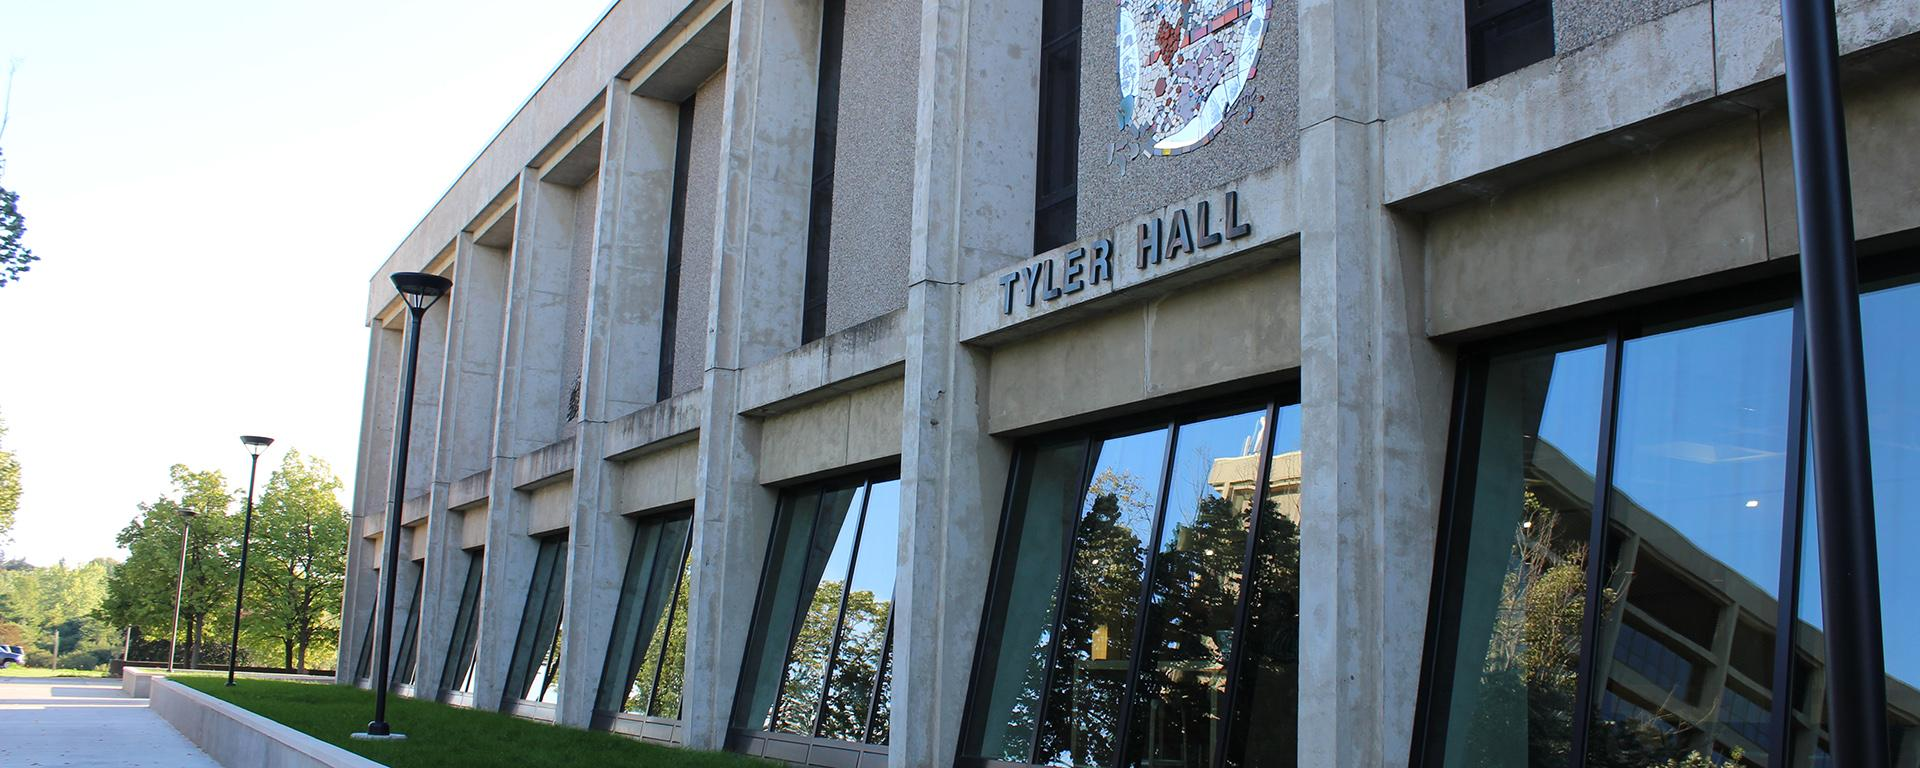 The facade of Tyler Hall after renovation